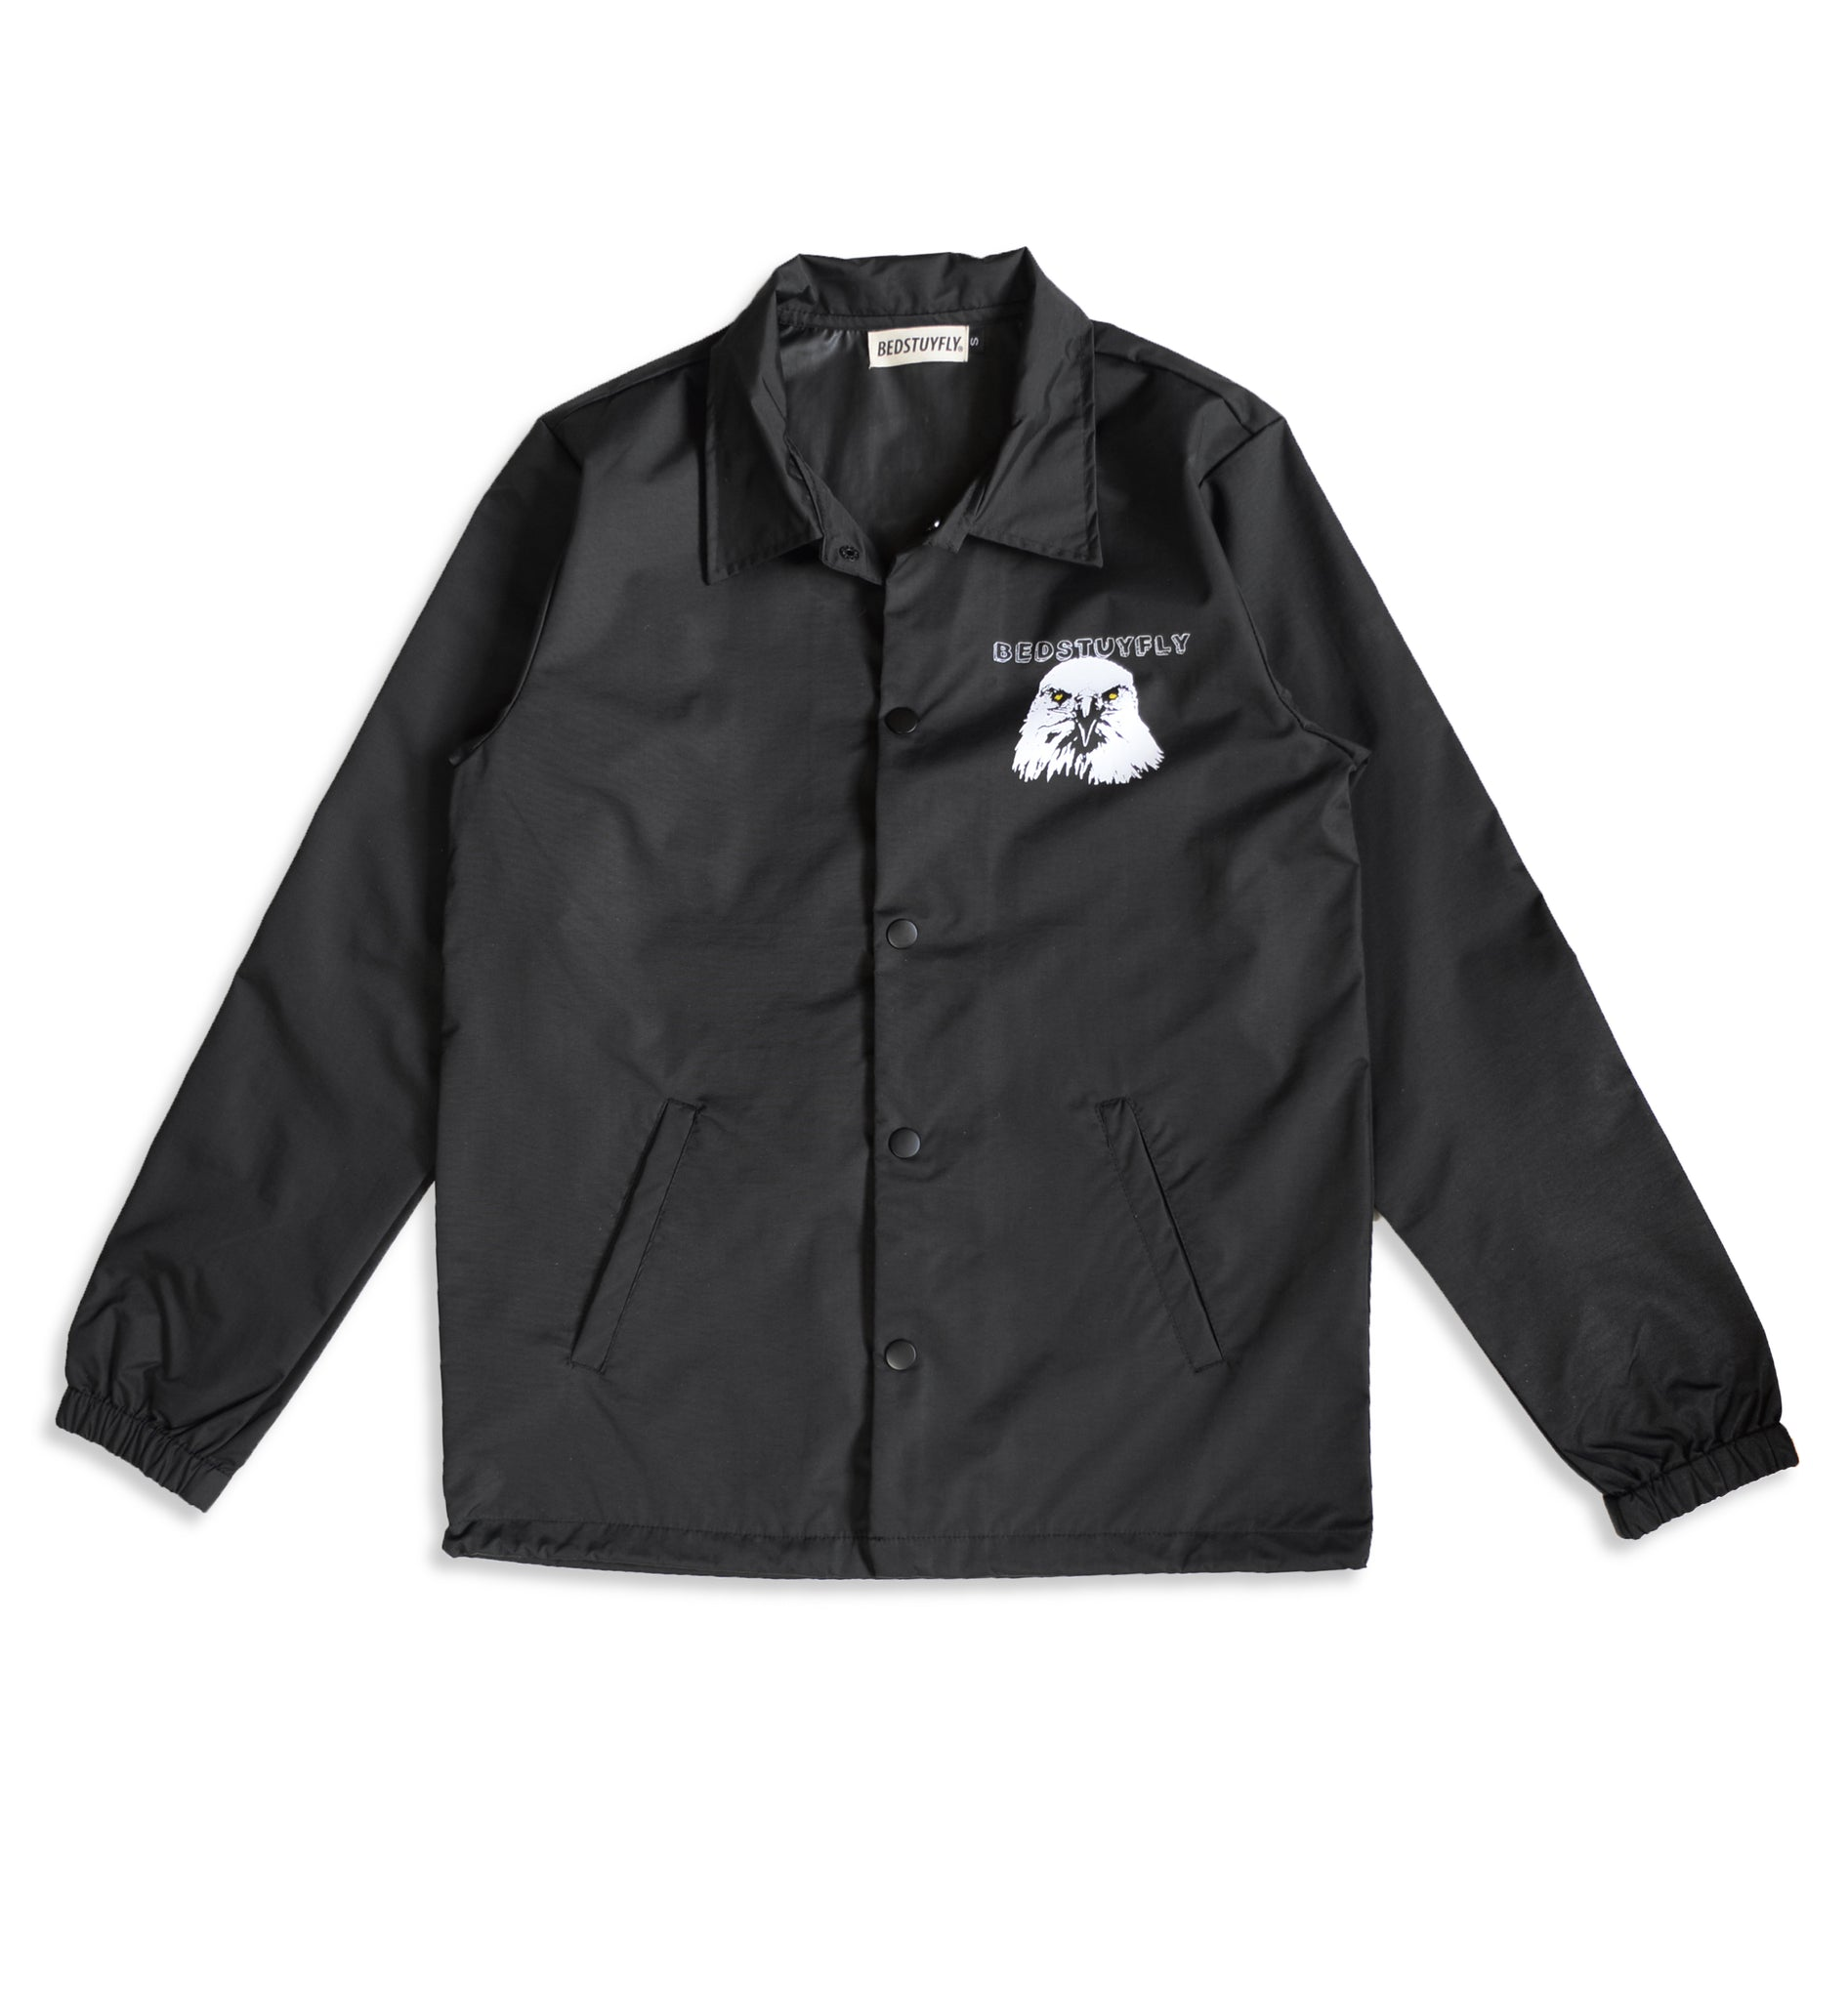 American Eagle Coach Jacket (Blk)